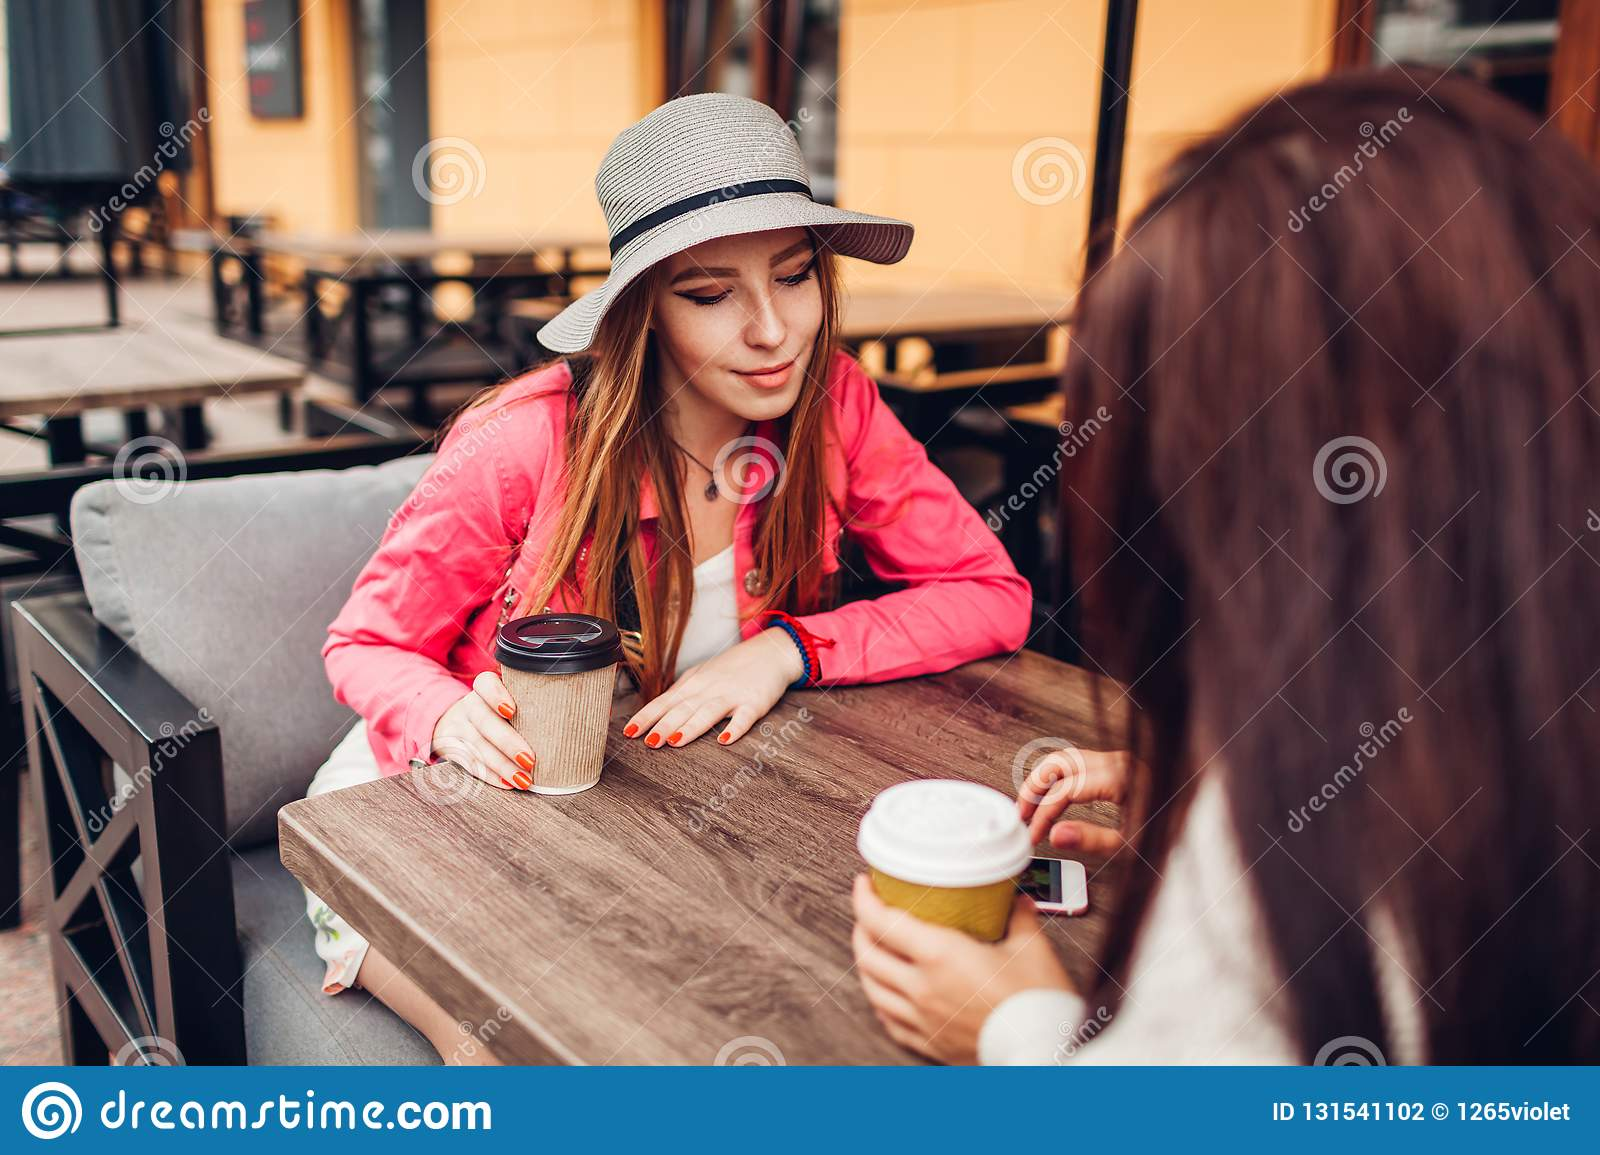 Two women chatting while having coffe in outdoor cafe. Happy friends using phone checking pictures. Girls hang out and having fun